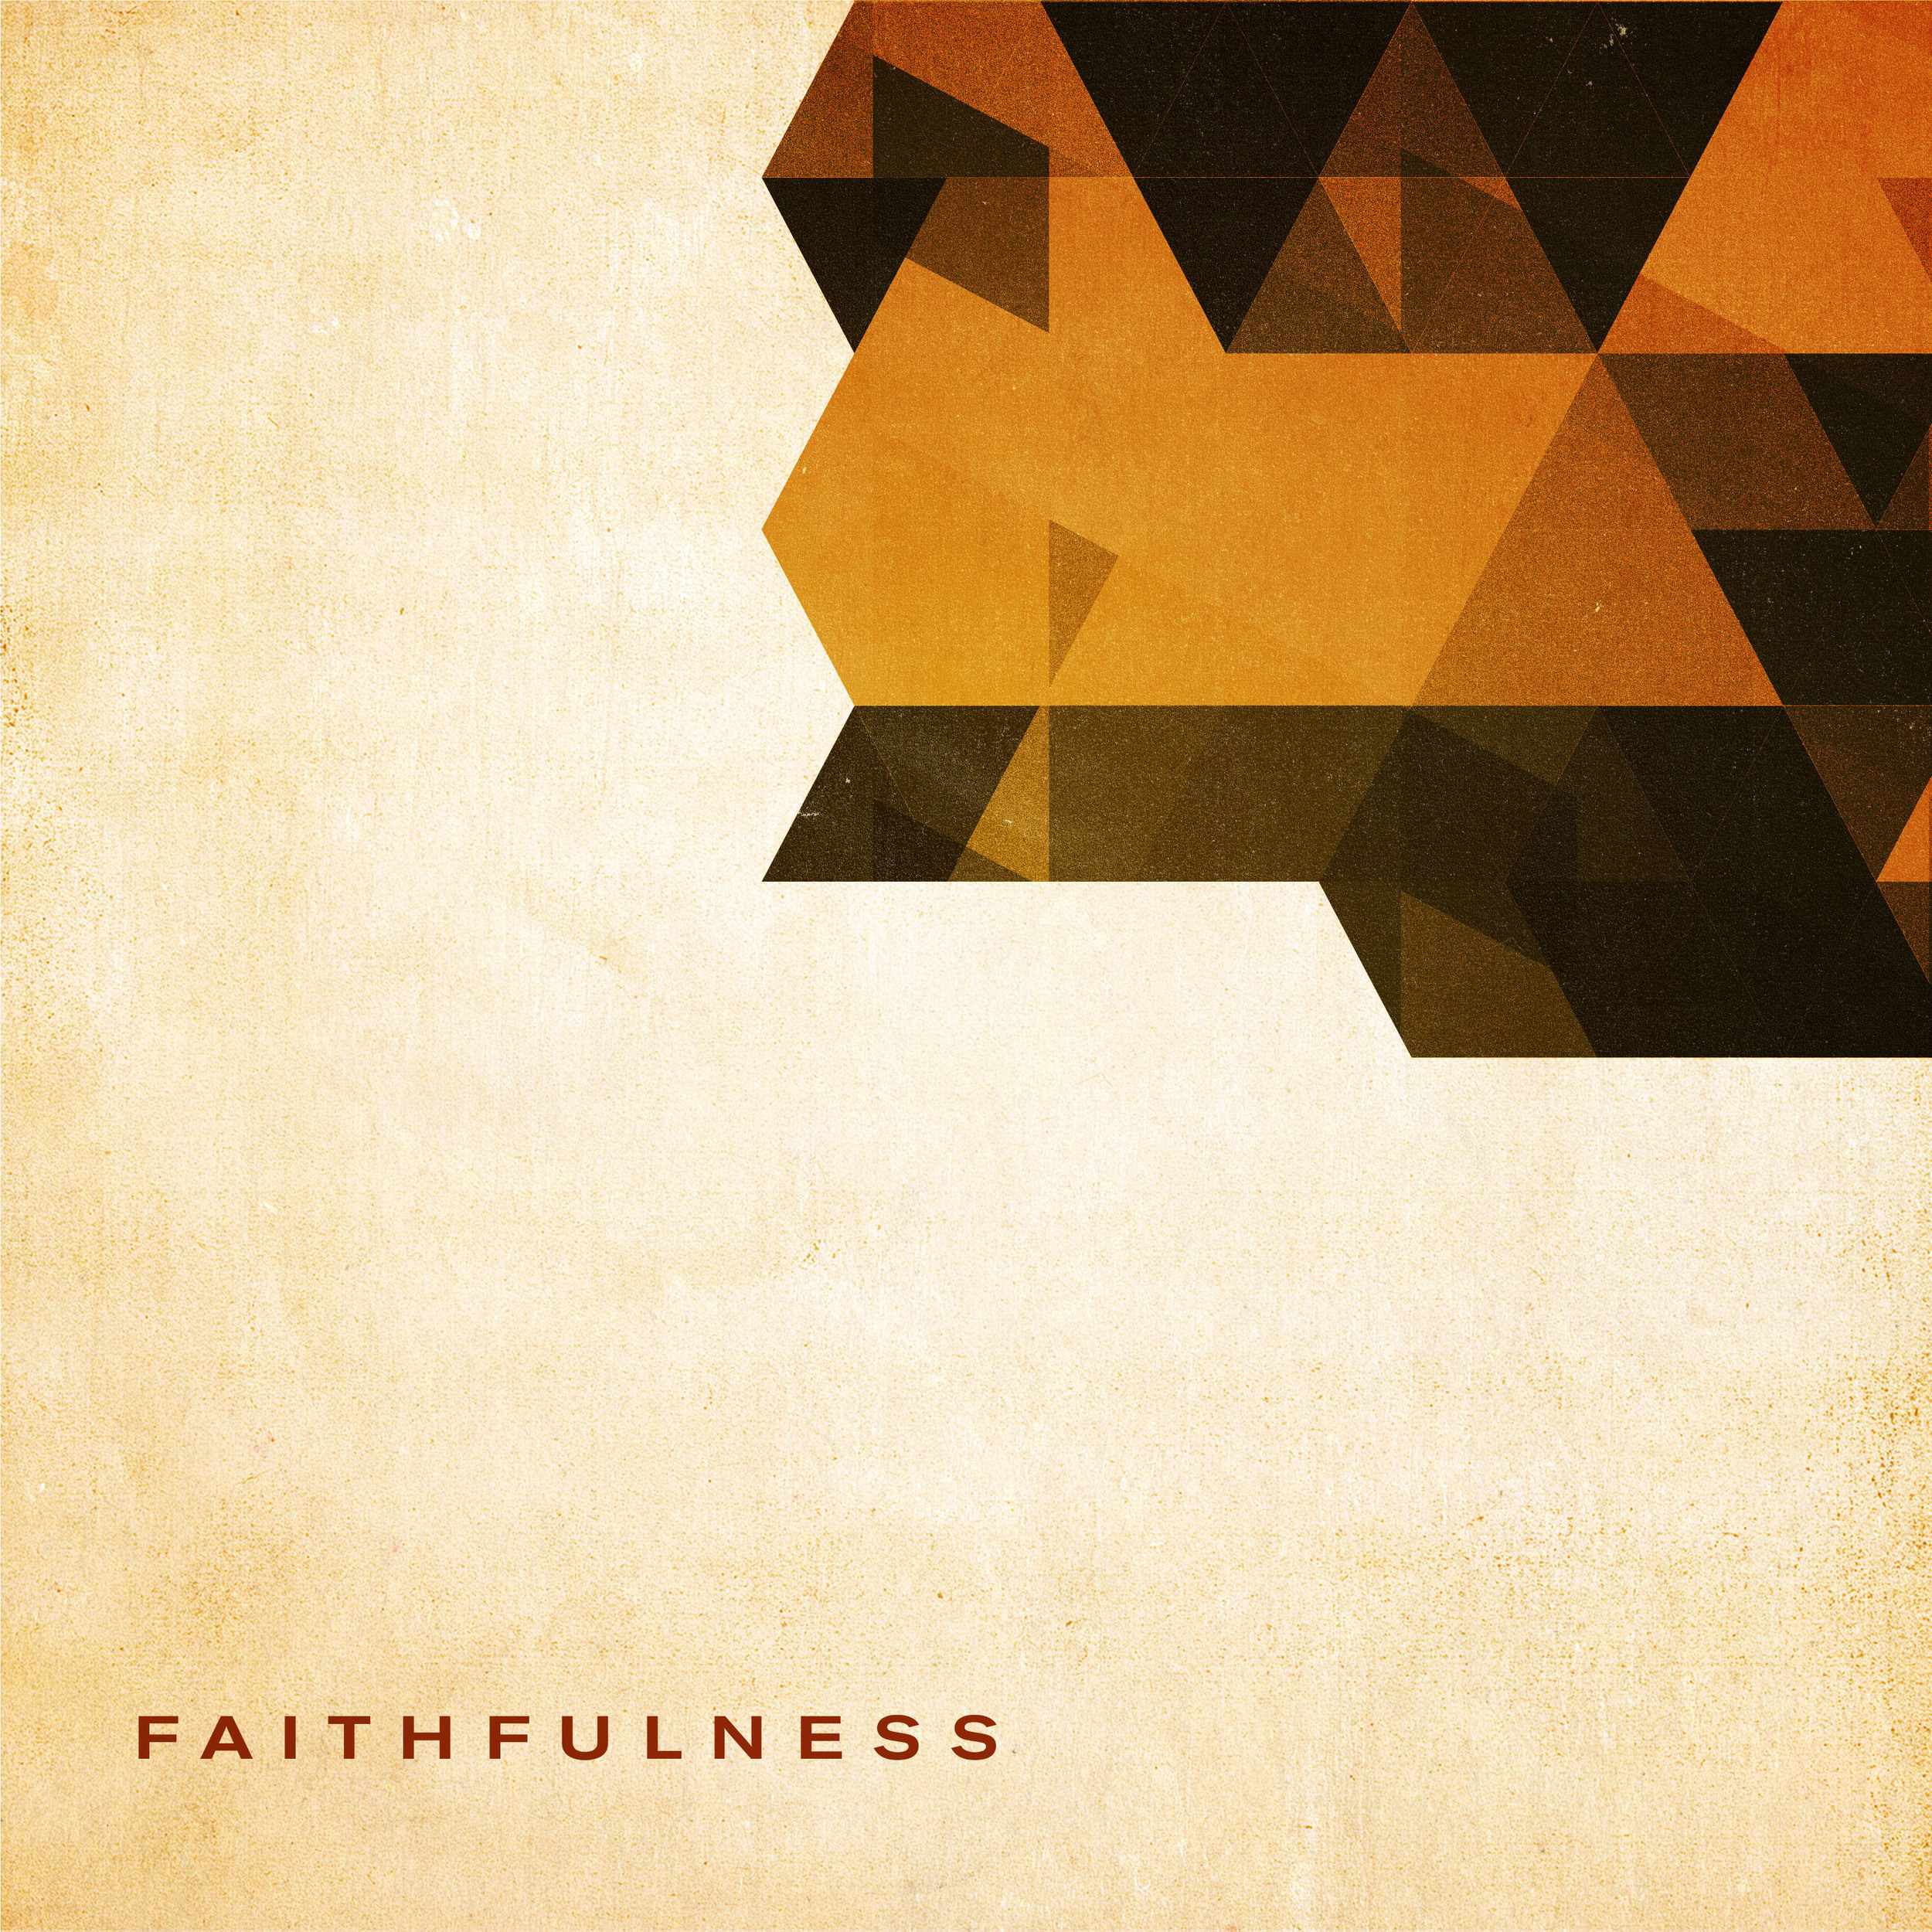 Fruit-of-the-Spirit__0006_7-Faithfulness.jpg